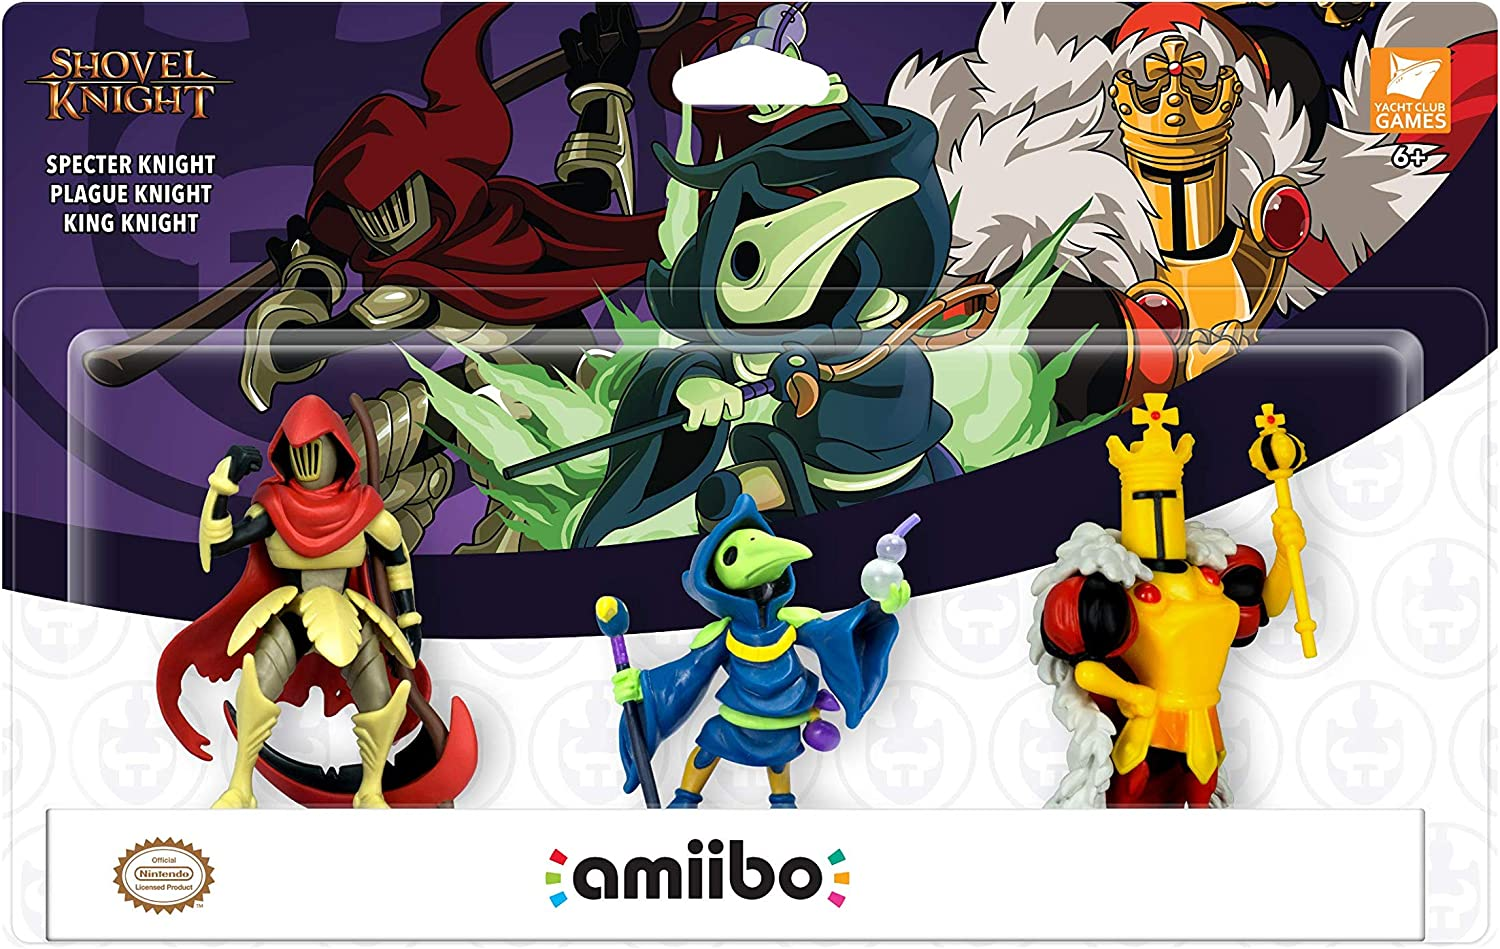 Yacht Club Games - Shovel Knight, Pack De 3 Figuras Amiibo: Amazon.es: Videojuegos